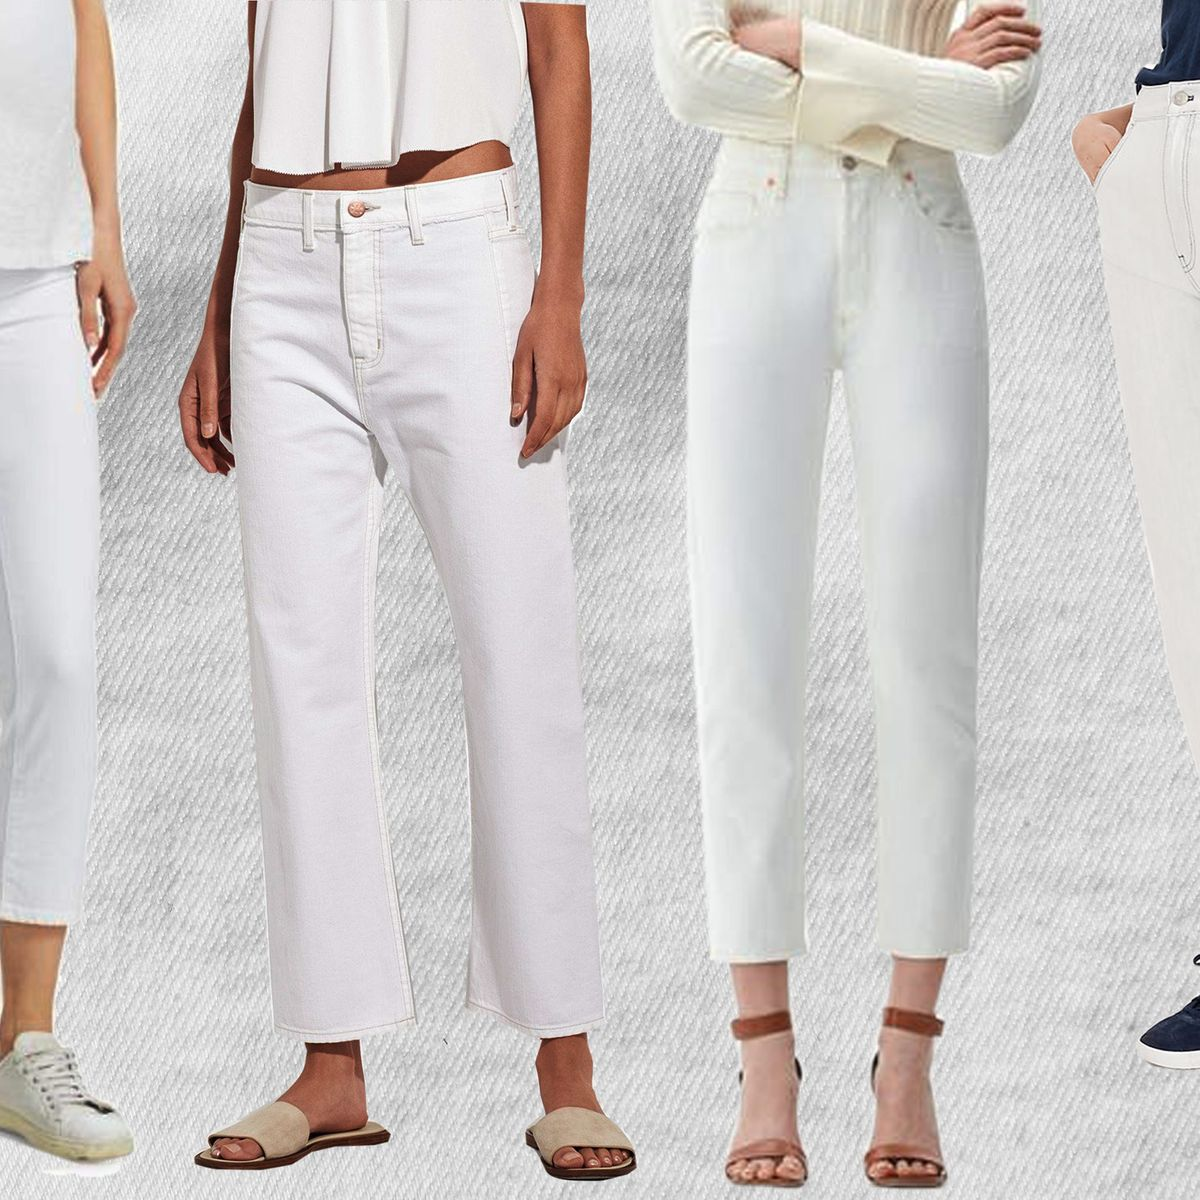 ed24ea9f8003b The 14 Best White Jeans for Women of All Sizes 2018